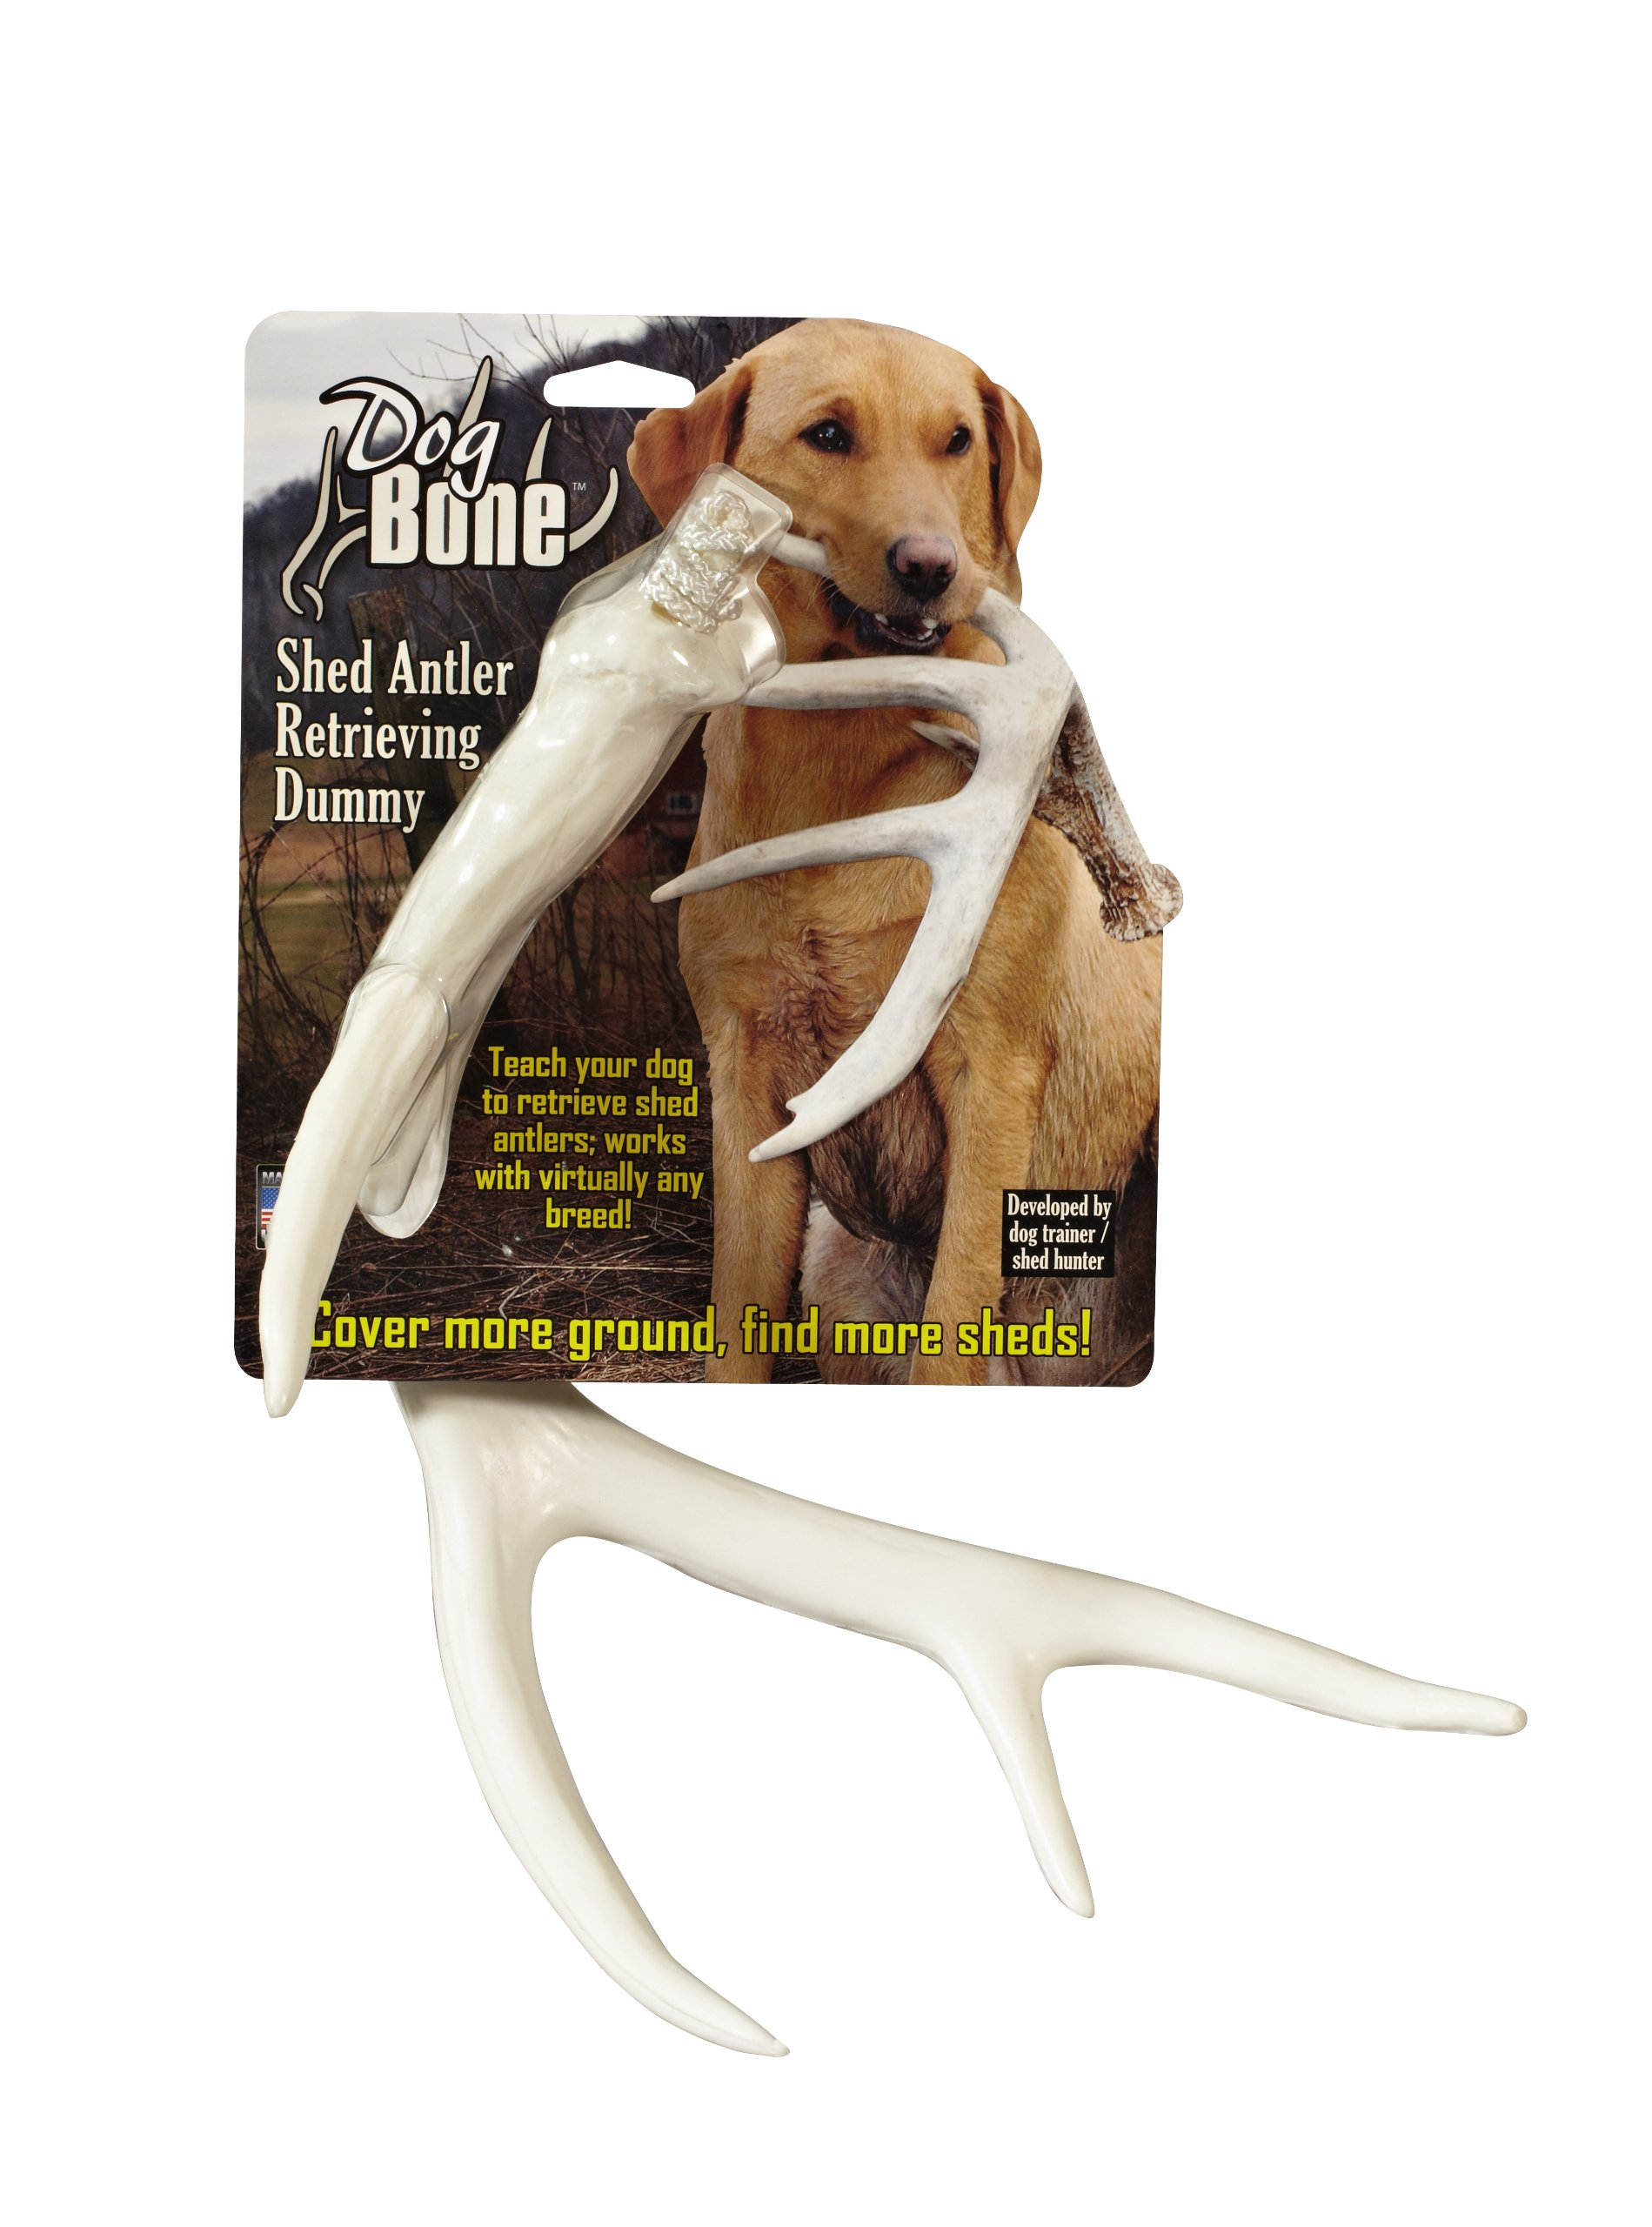 Dog Bone Shed Dummy Retrieving Antler by Dog Bone (Image #1)